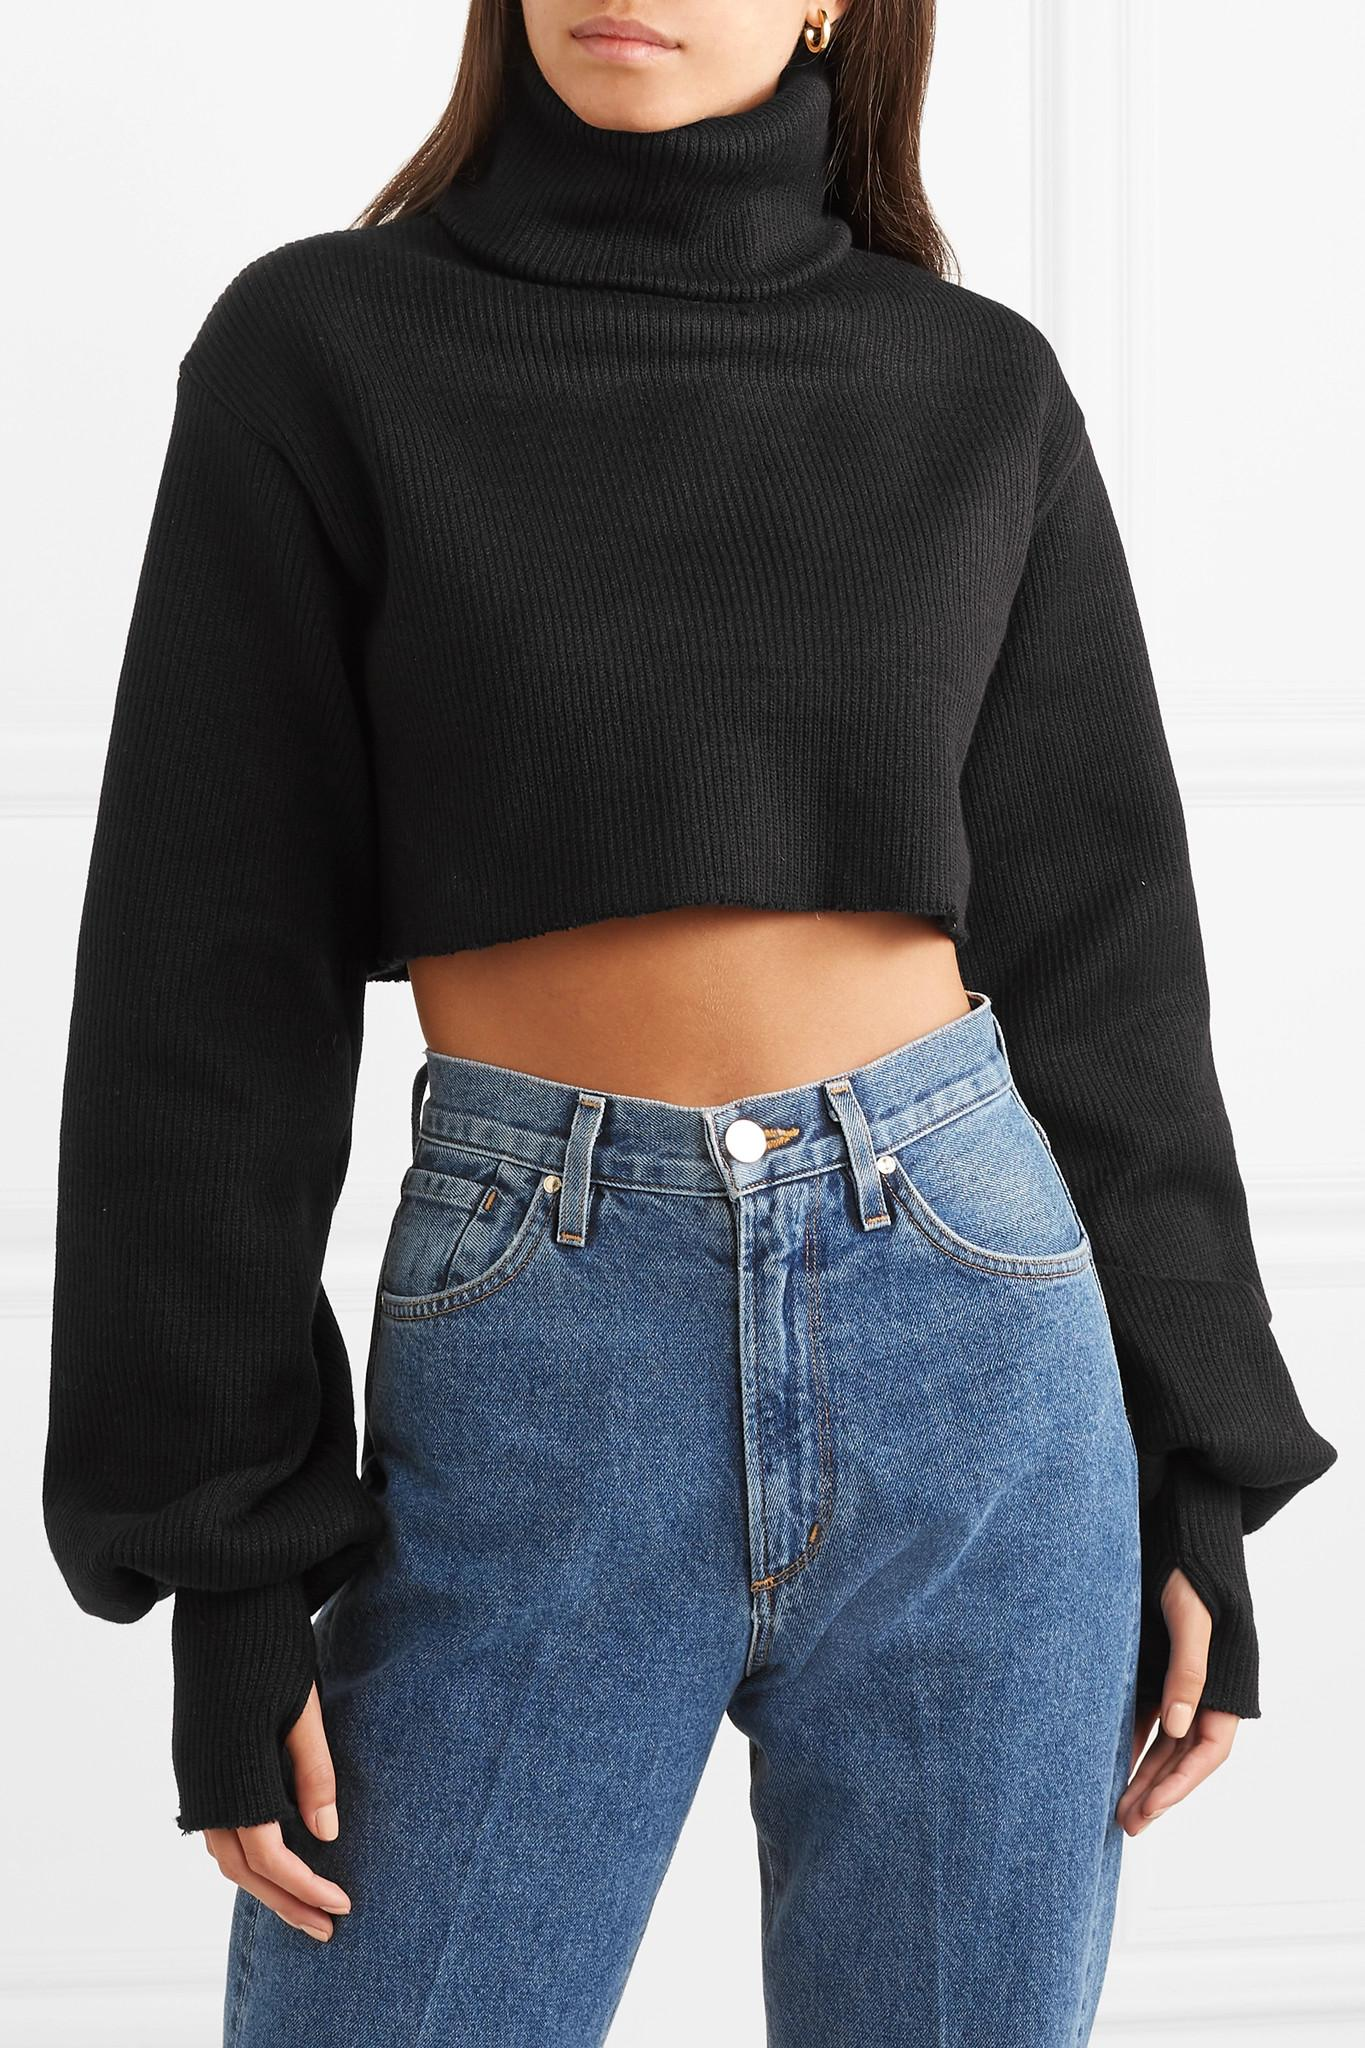 06d41d69744 Orseund Iris - Black Cropped Ribbed-knit Turtleneck Sweater - Lyst. View  fullscreen